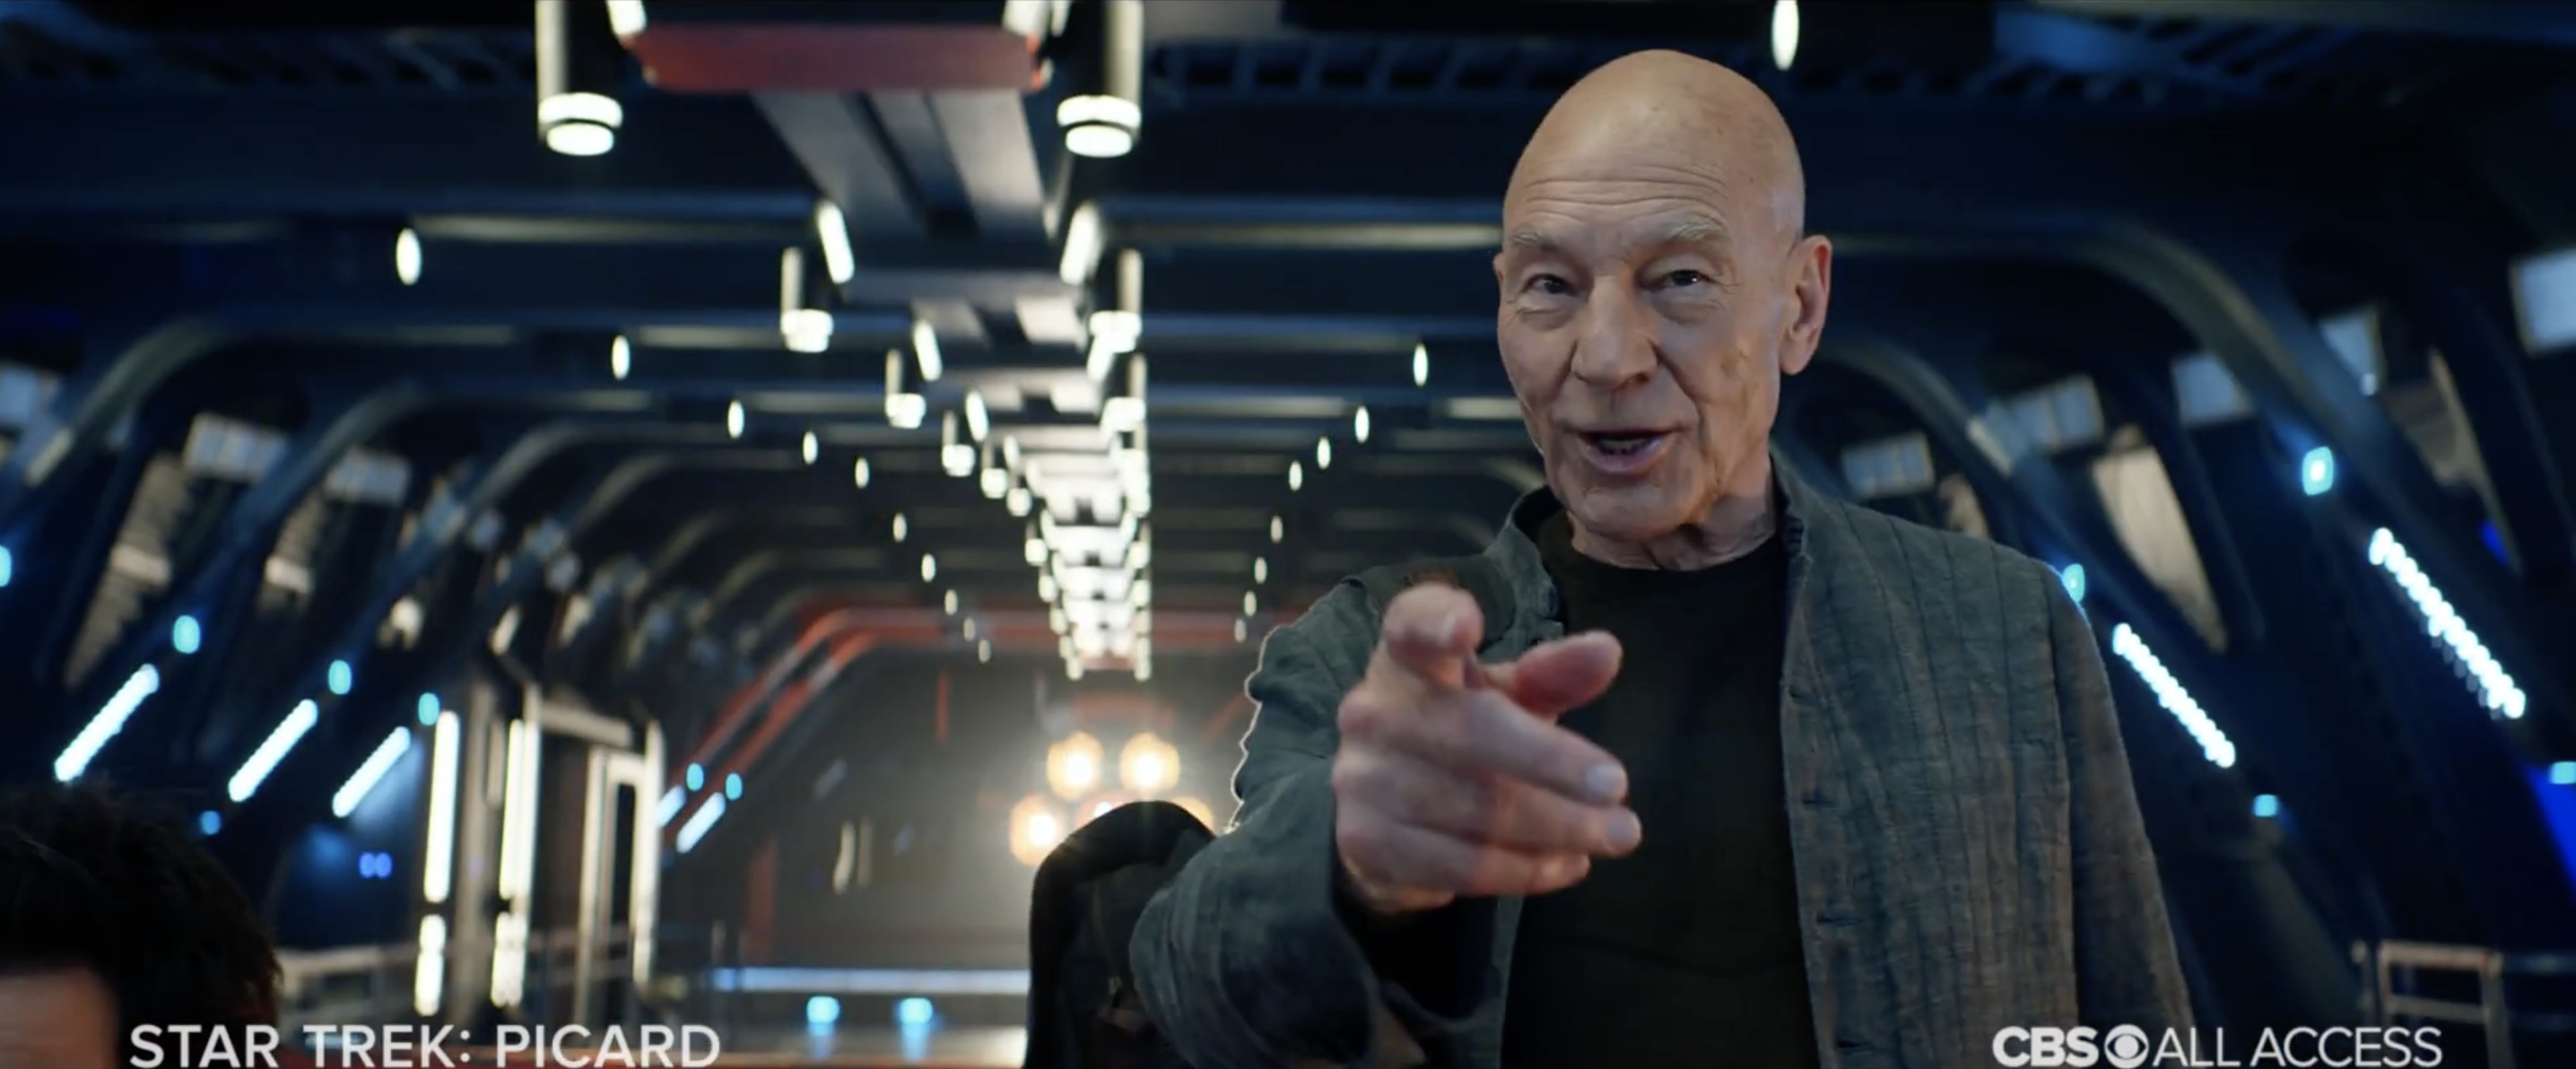 Patrick Stewart Assembles His Crew in the Star Trek: Picard Trailer